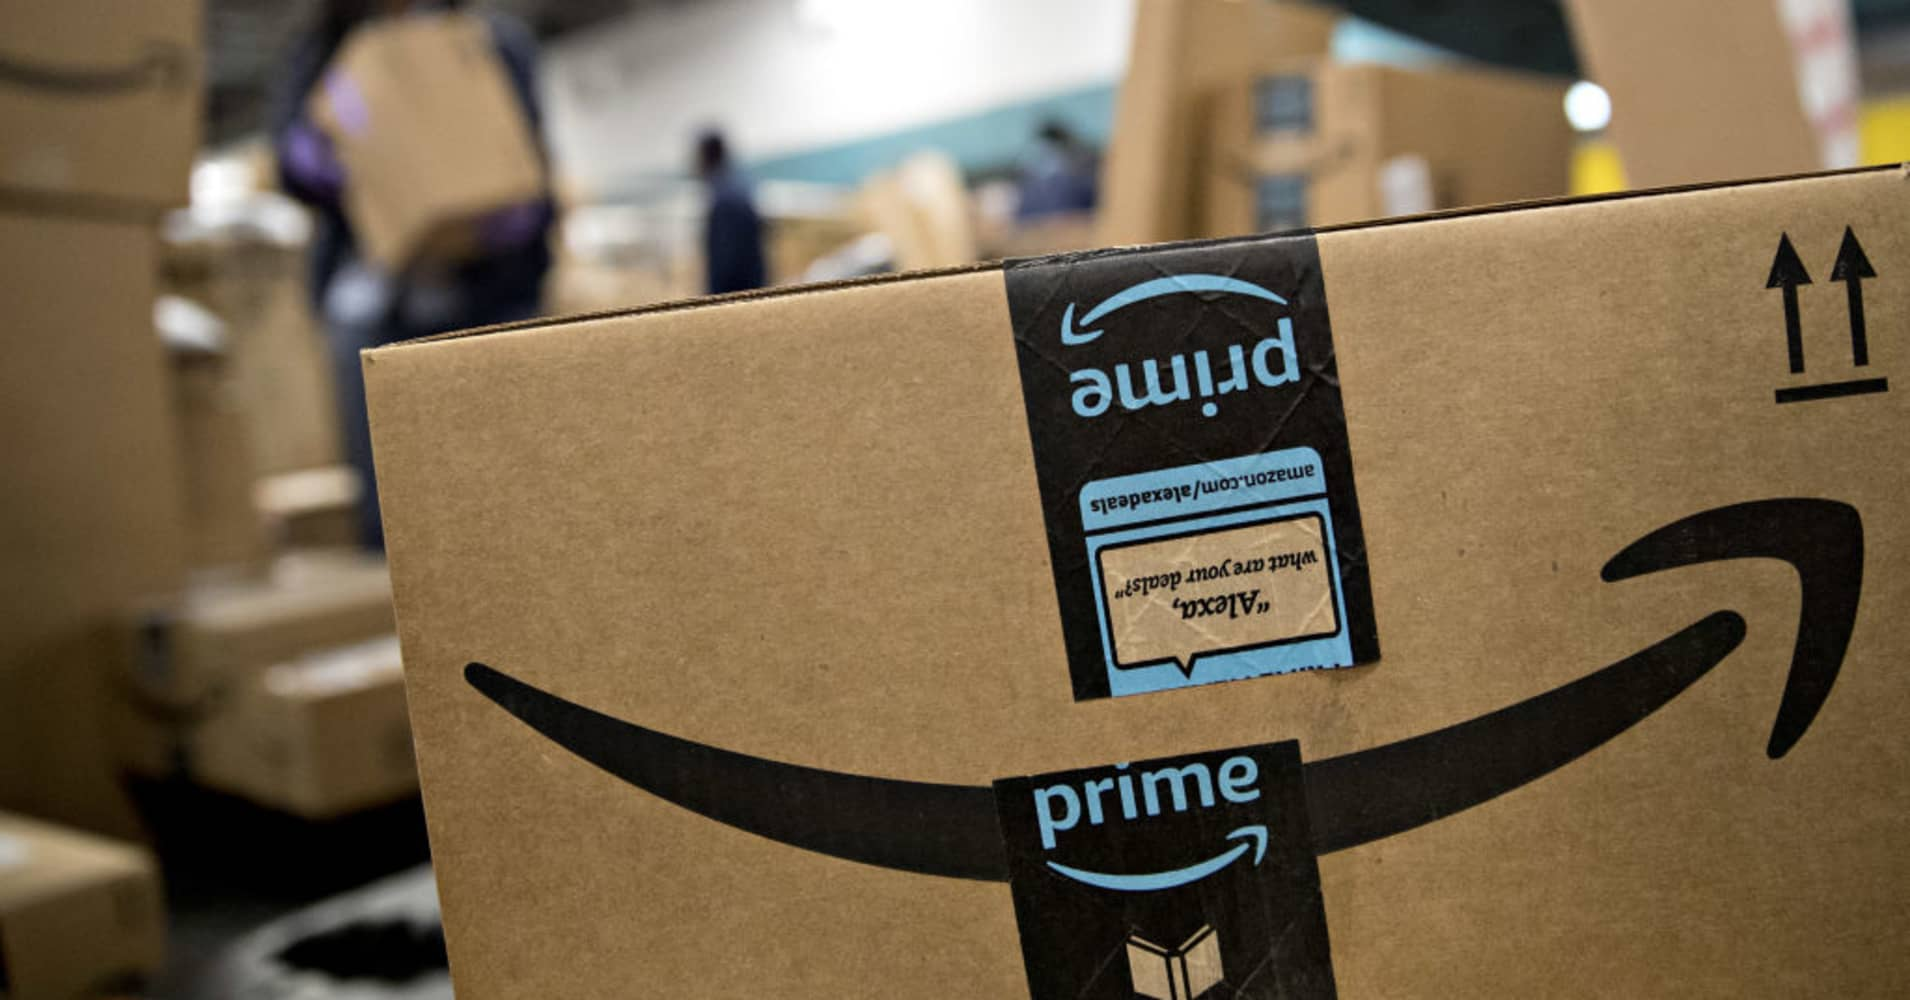 An Amazon Prime package